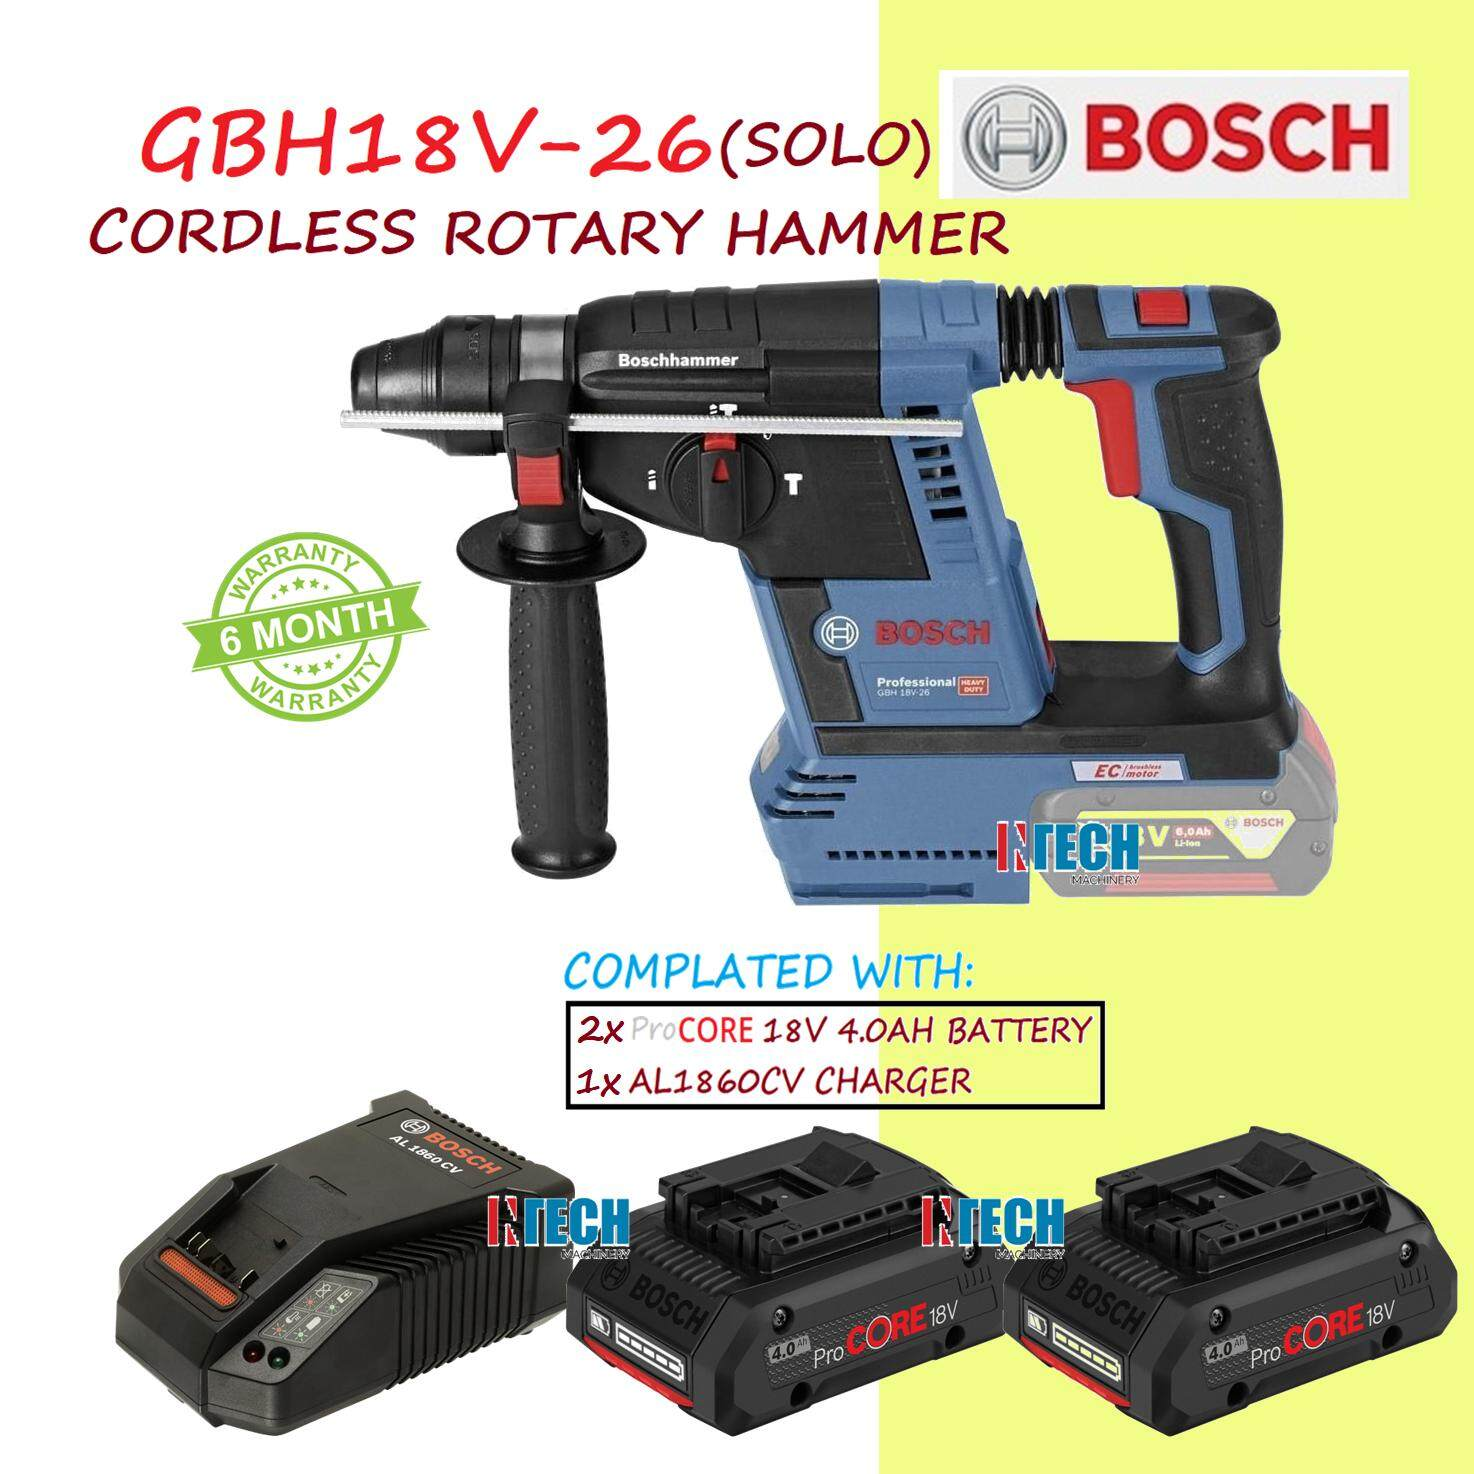 BOSCH GBH18V-26(SOLO)CORDLESS ROTARY HAMMER+AL1860CV CHARGER+2xPROCORE 18V 4.0AH BATTERY